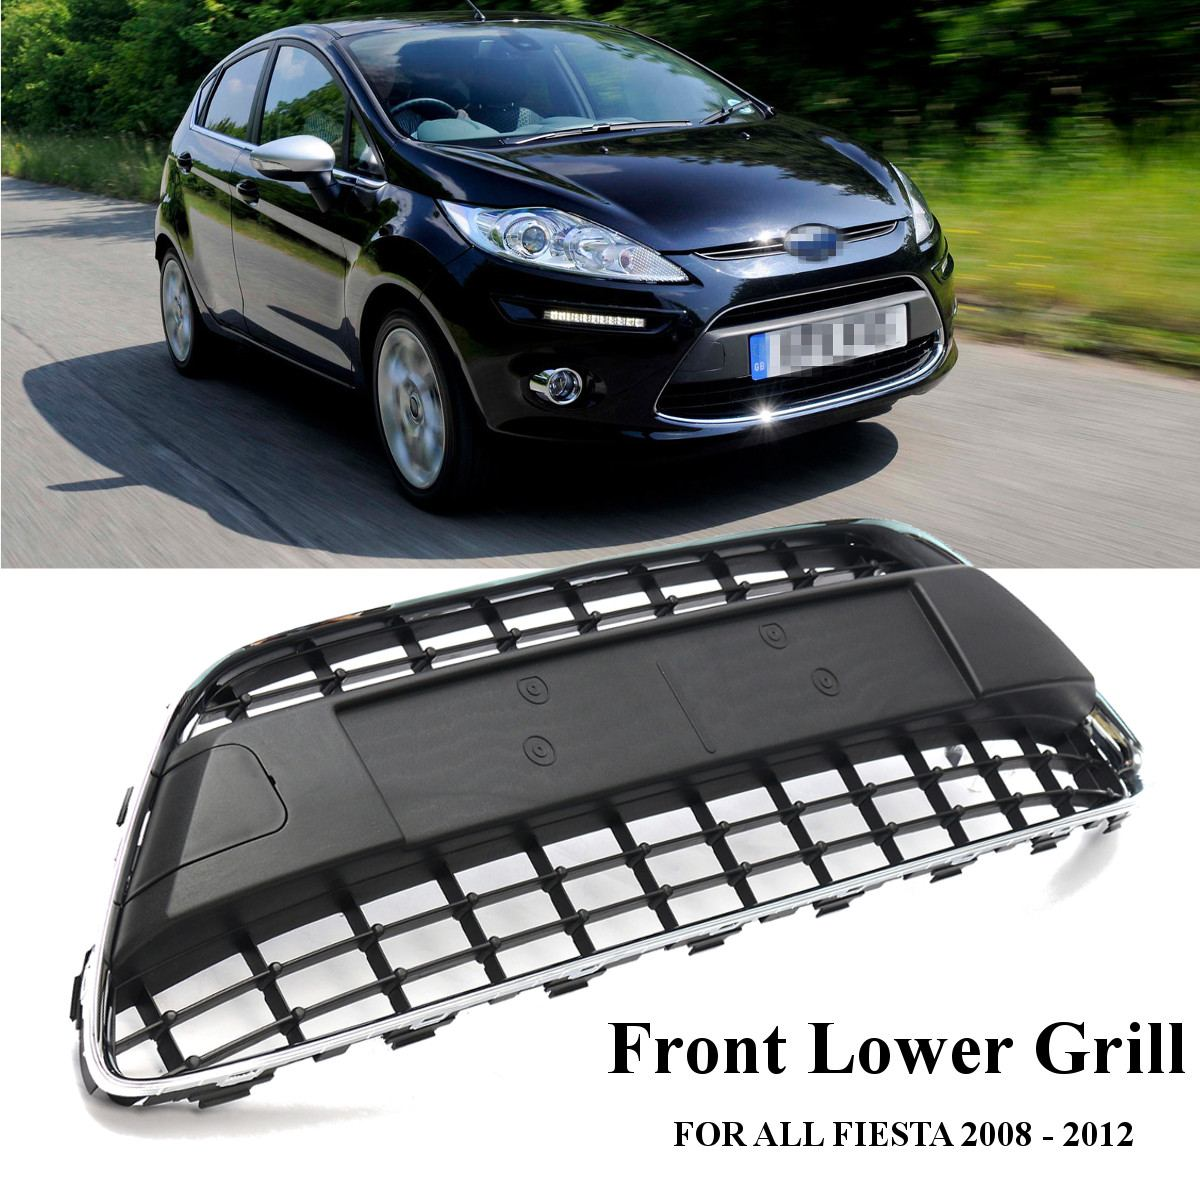 98cm Car Front Bumper Grille Center Lower Racing Grill Black W/ Chrome Trim For Ford/Fiesta MK7 2008-201298cm Car Front Bumper Grille Center Lower Racing Grill Black W/ Chrome Trim For Ford/Fiesta MK7 2008-2012